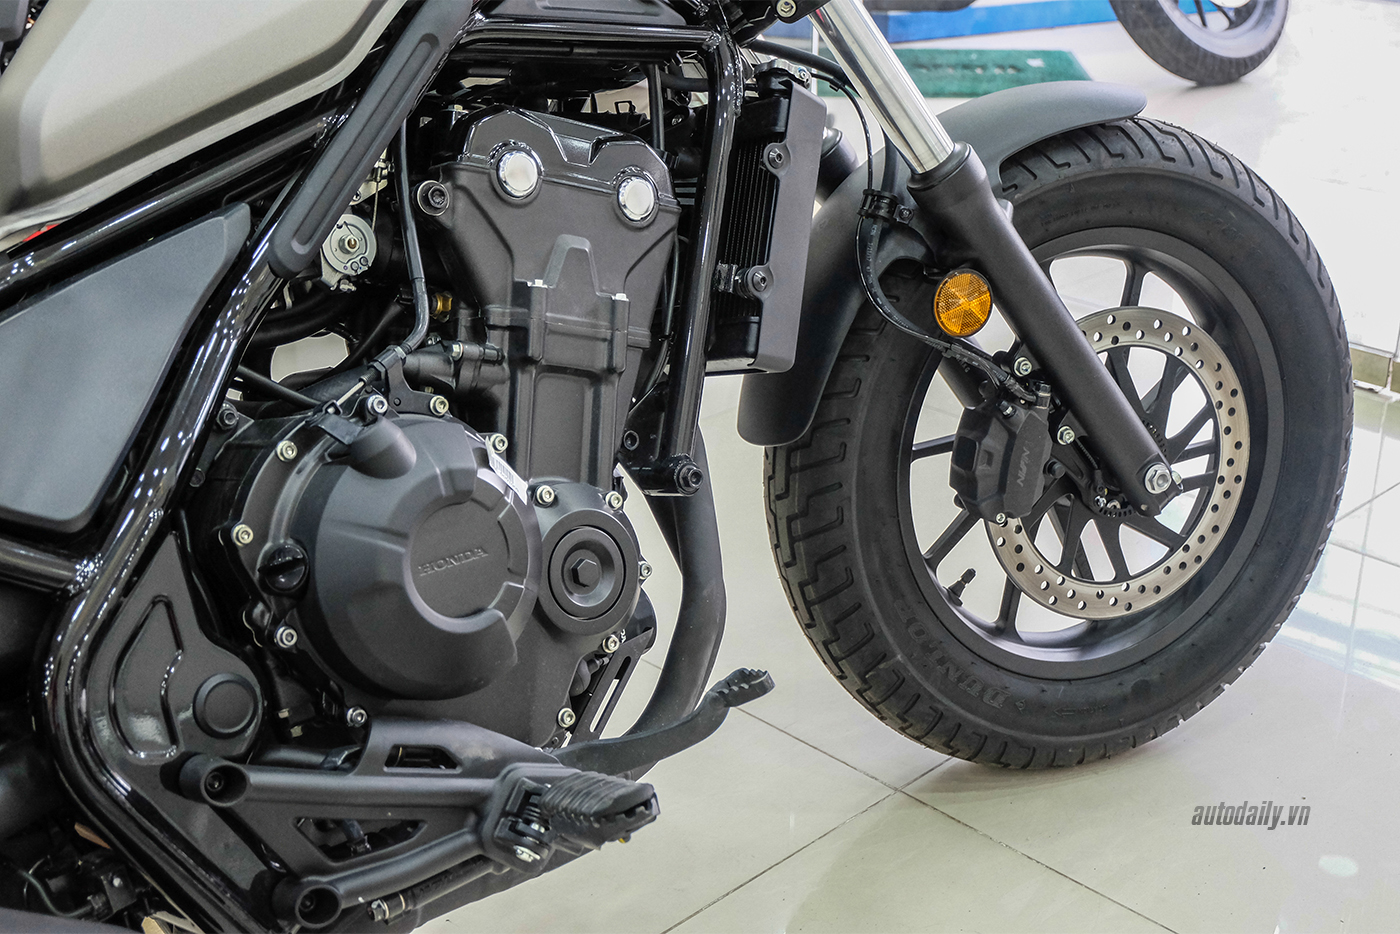 honda-rebel-500-abs-2017-6.jpg